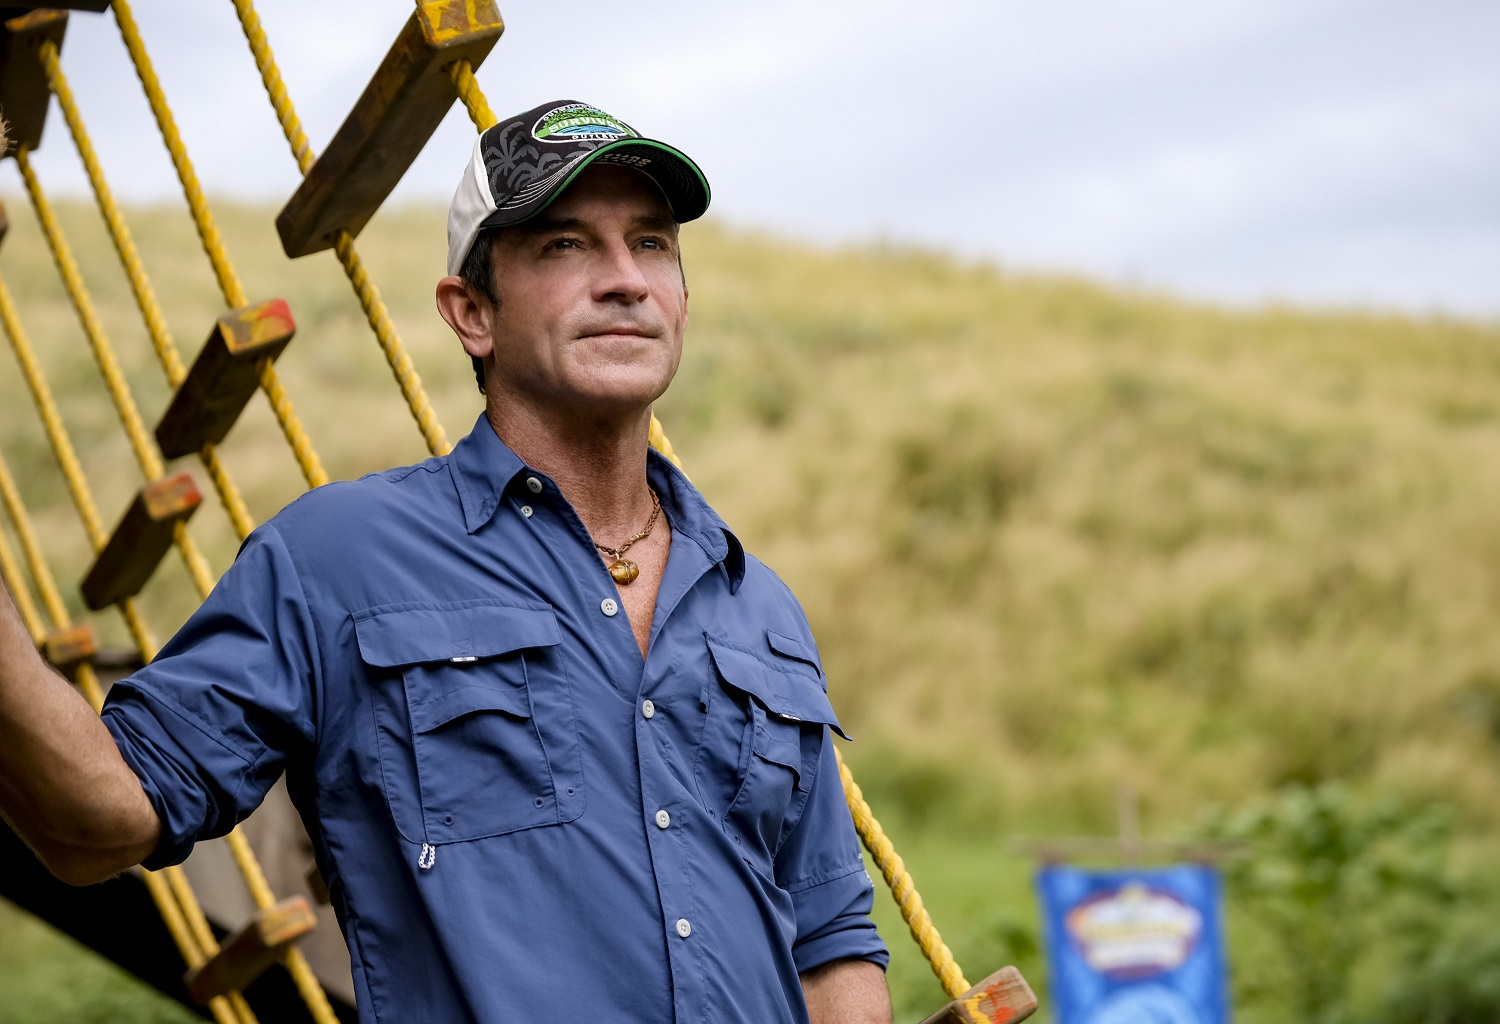 Jeff Probst, host of Survivor 41 wearing a blue button down, standing on a boat, looking into the distance